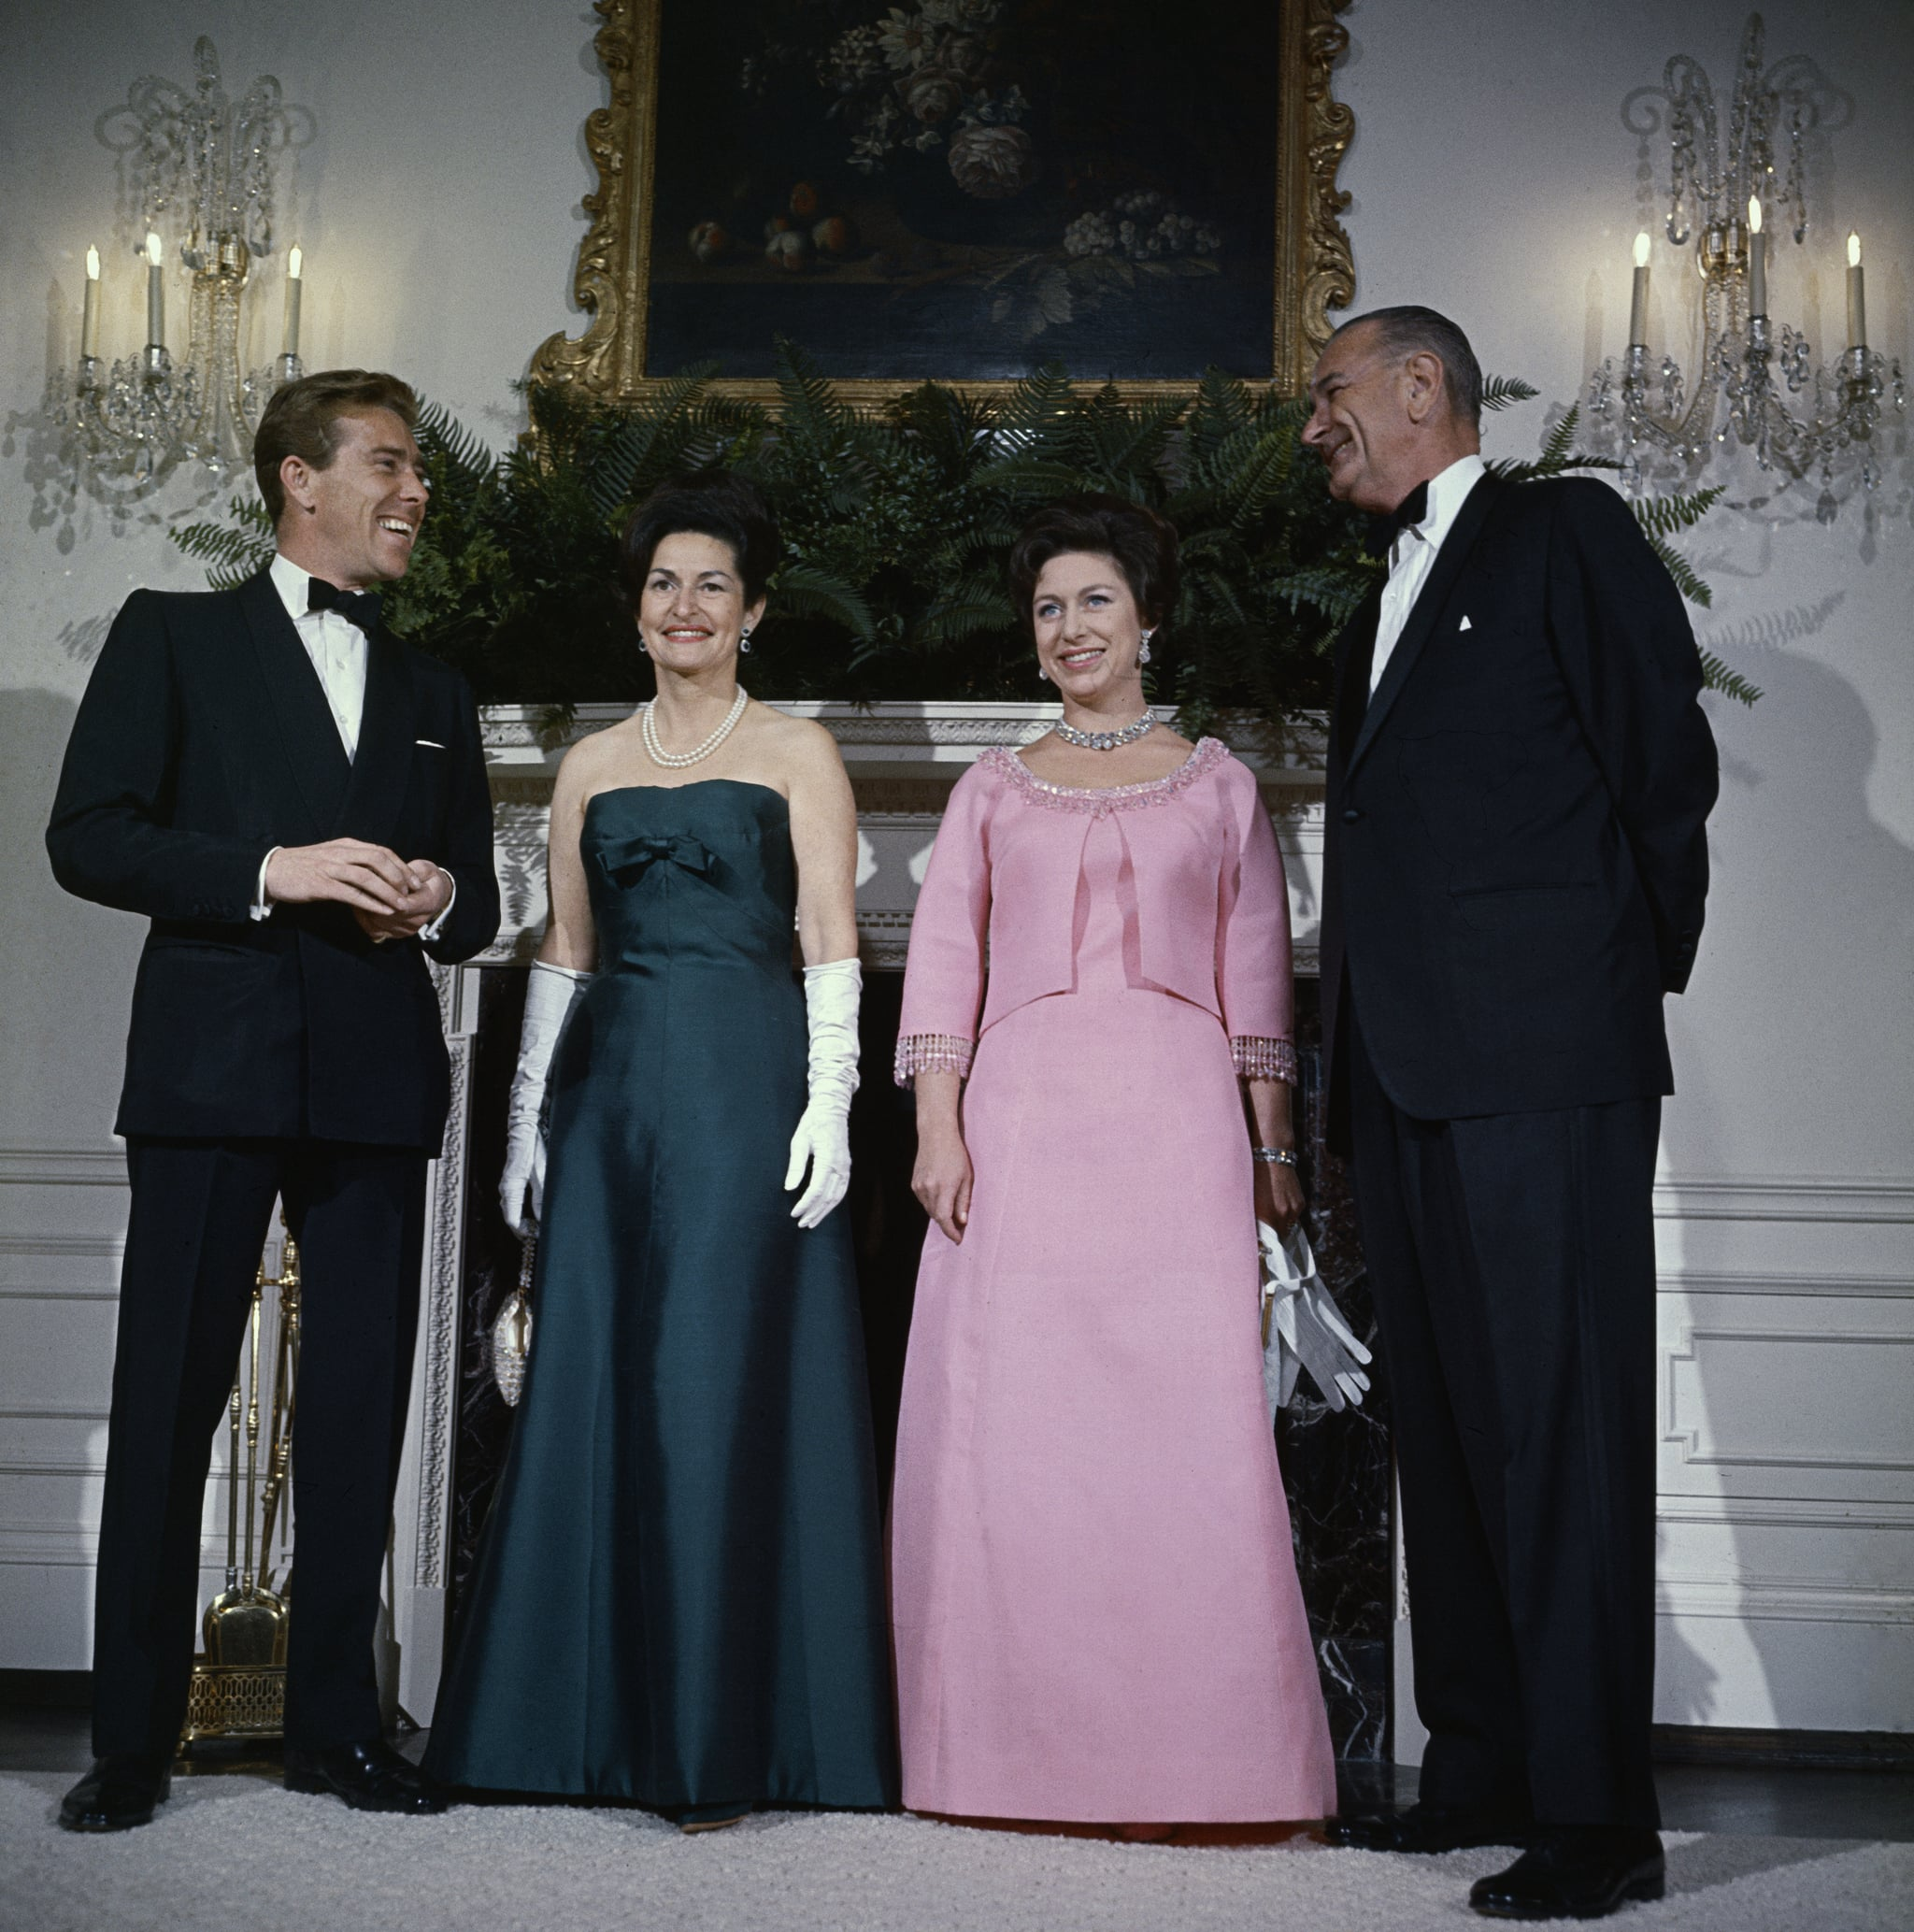 (Original Caption) President Lyndon Johnson (R), Princess Margaret, Mrs. Johnson, and Lord Snowdon pose for photographers in the Queen's room at the White House November 17th, prior to a dinner-dance in honour of the Princess and Lord Snowdon.